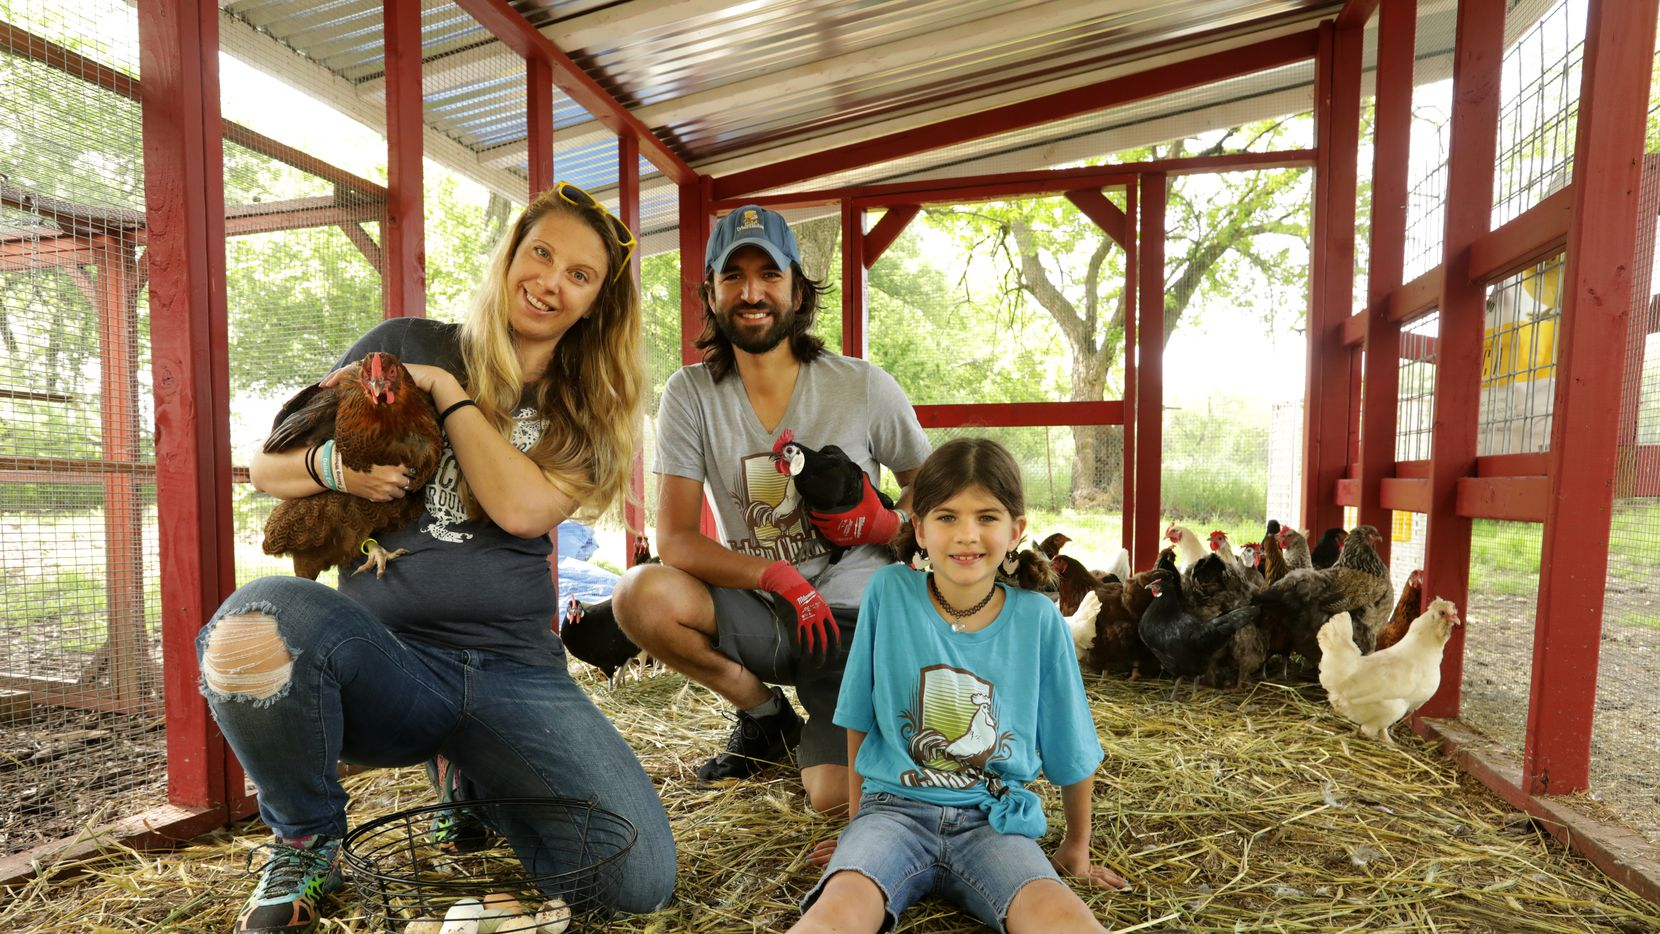 Casey Cutler, left, John Ramos, and 7-year-old Joplin Ramos run Urban Chicken from their home in McKinney, and have seen a dramatic increase in the number of people buying chickens and coops since COVID-19 began keeping everyone at home.